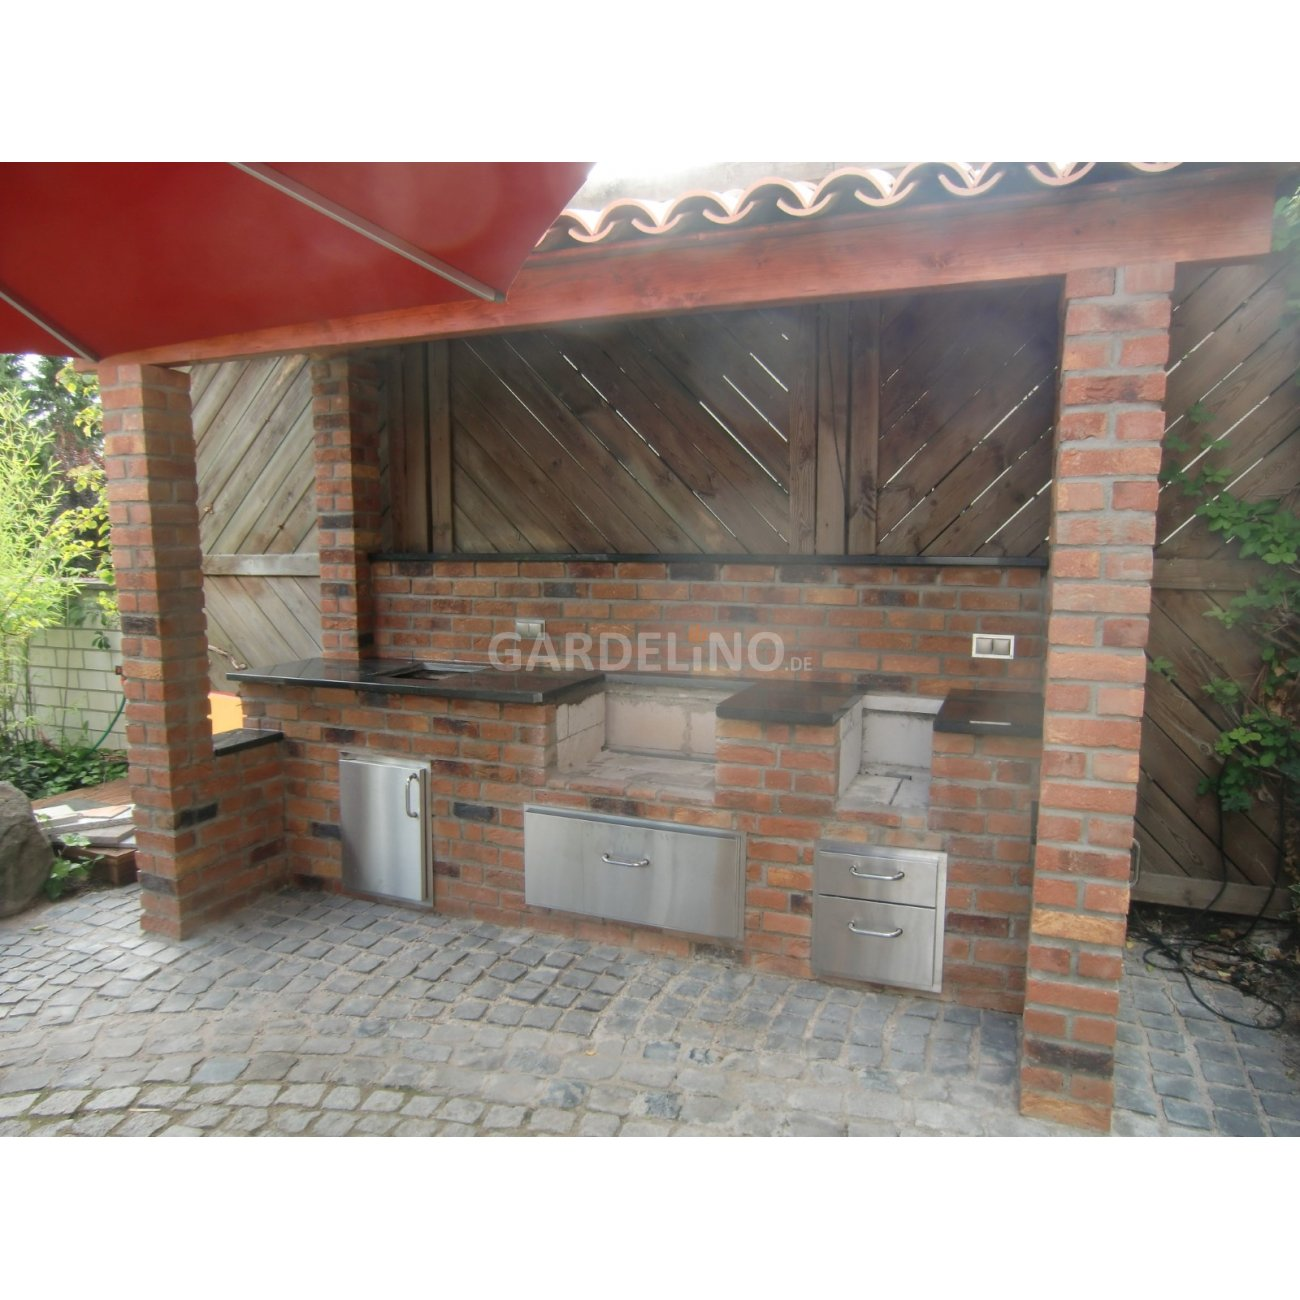 Outdoor Küche Gardelino Outdoorküche Aus Backstein Mit Fire Magic Einbau Gasgrill